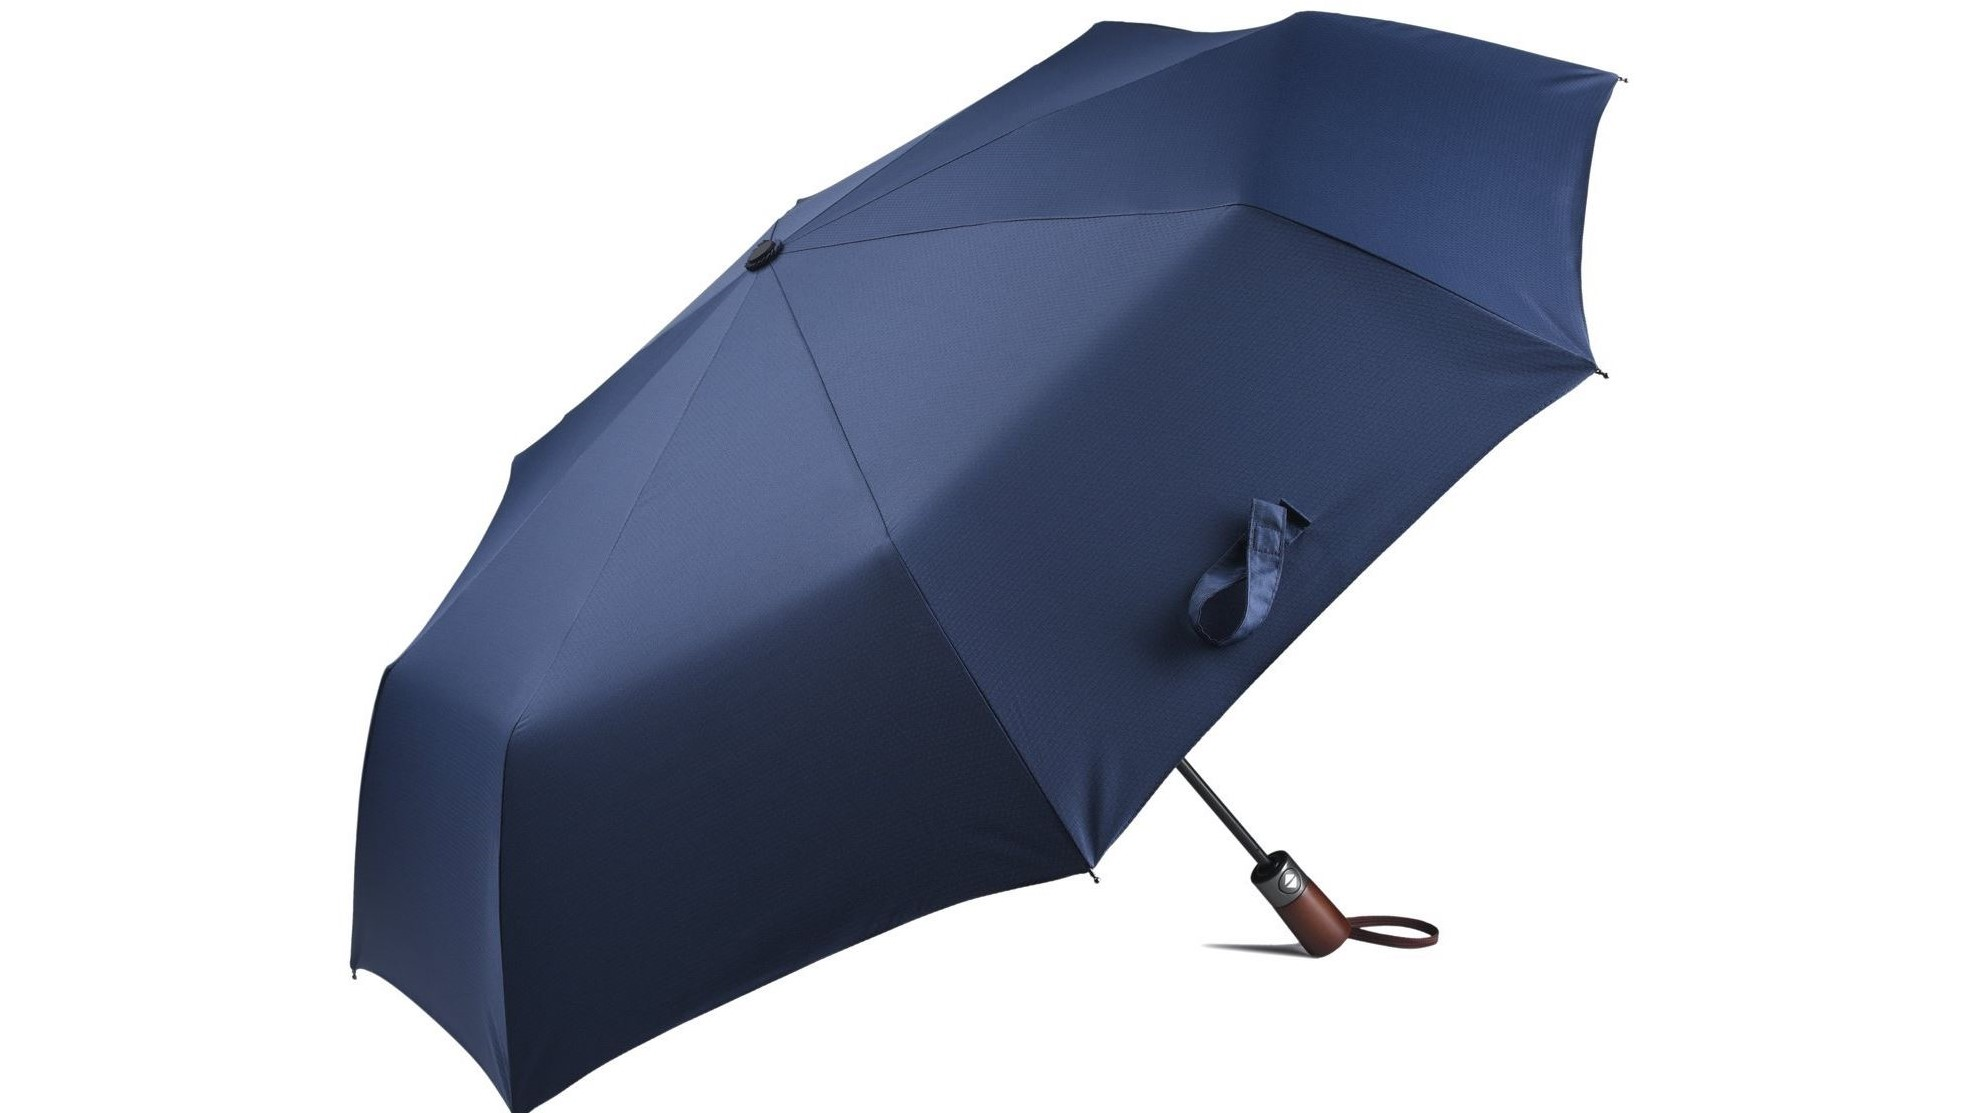 Someet Pro Travel Umbrella: lightweight, bag-sized and automatic